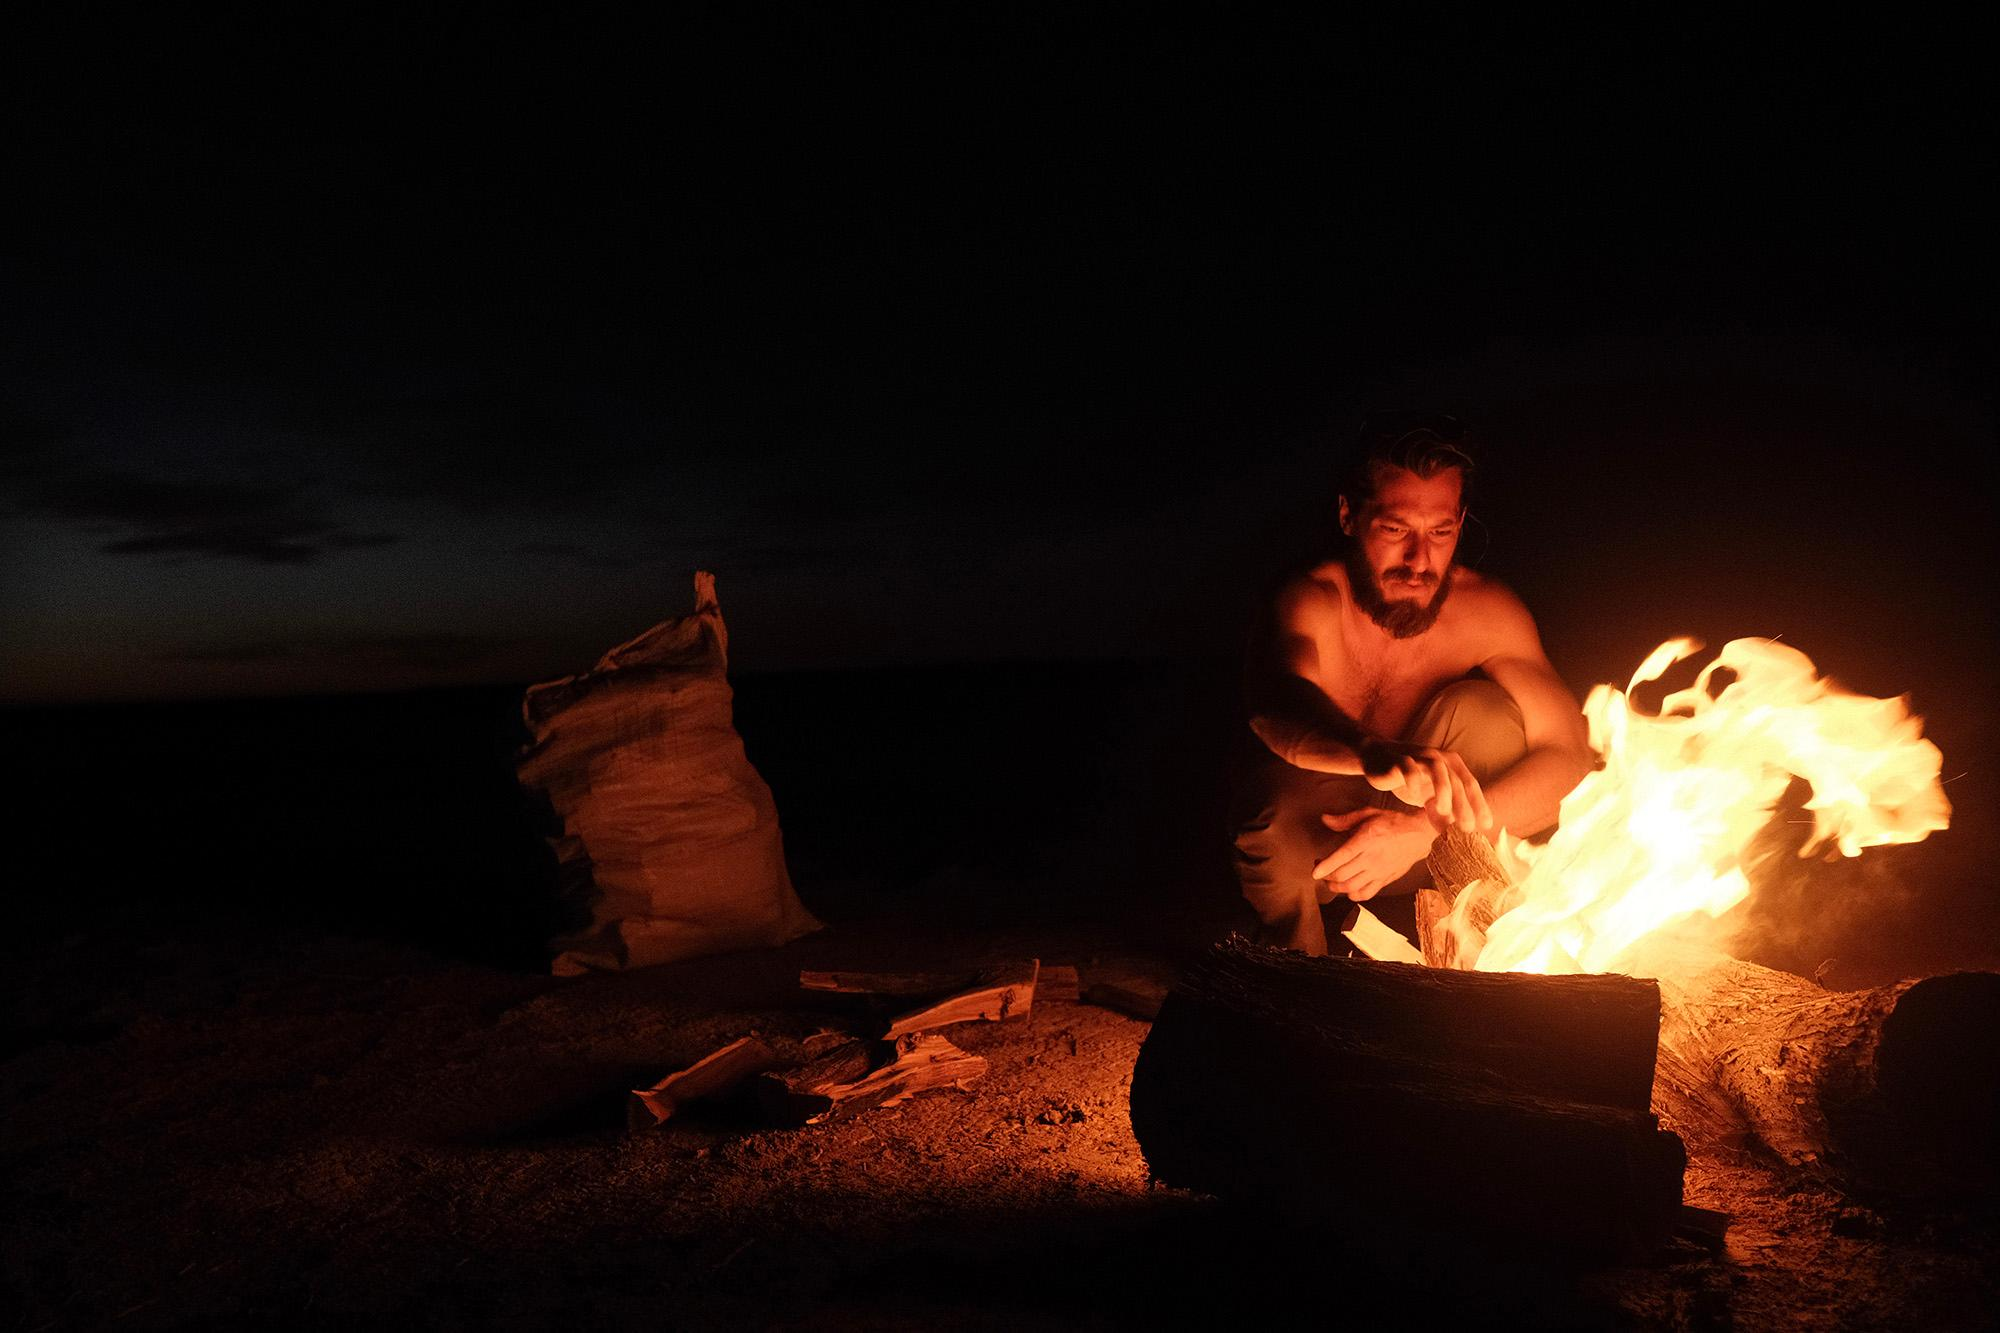 Man's ancient fascination with fire will never cease. DUST, Verneukpan, 2020.